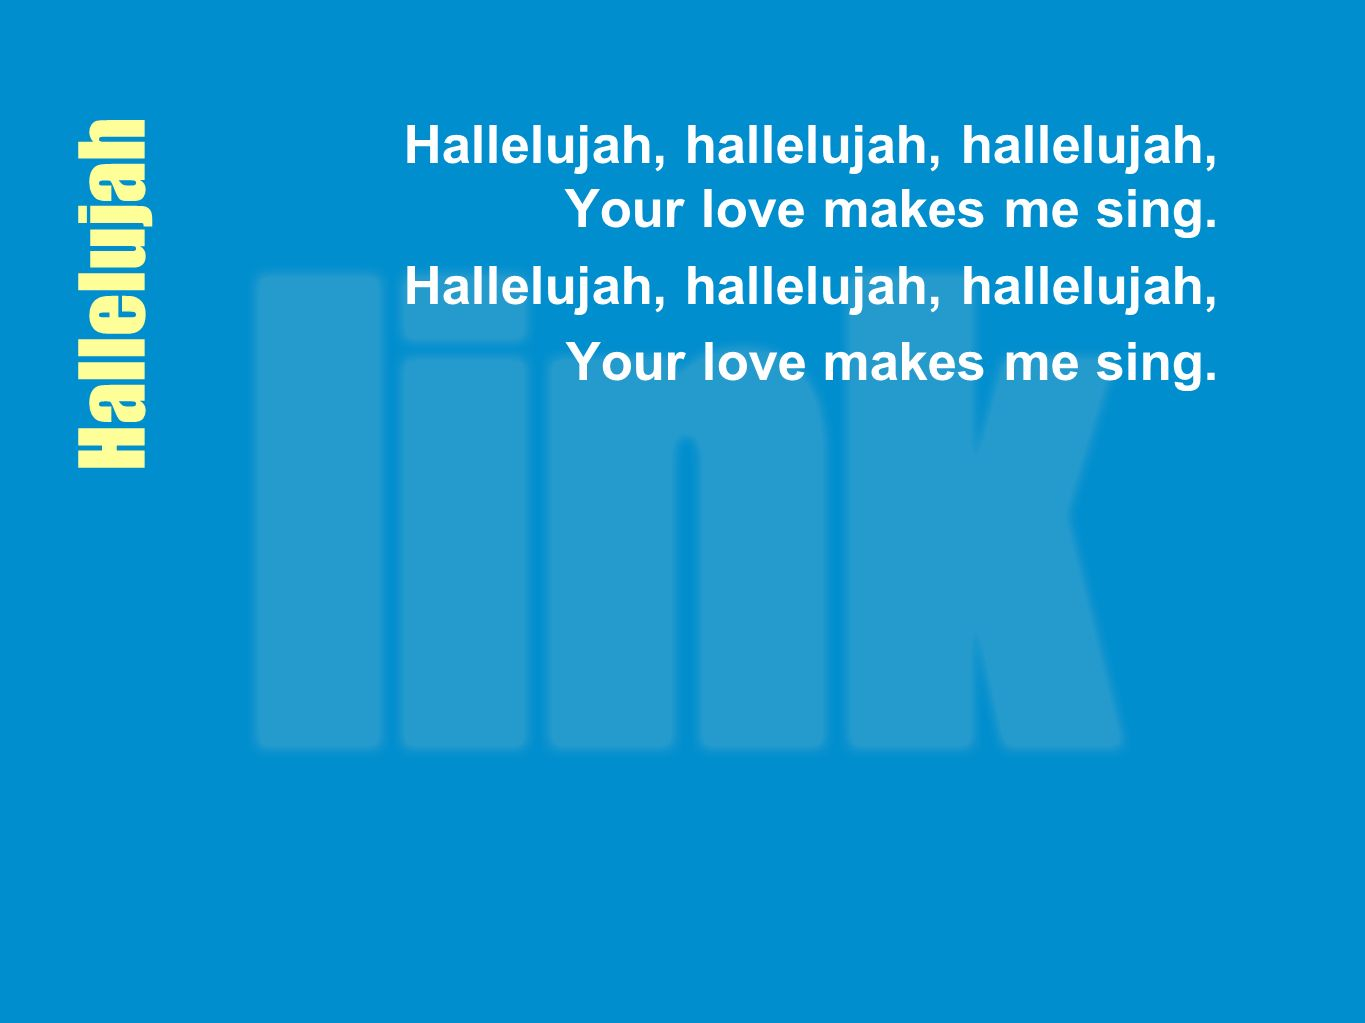 Hallelujah Hallelujah, hallelujah, hallelujah, Your love makes me sing.